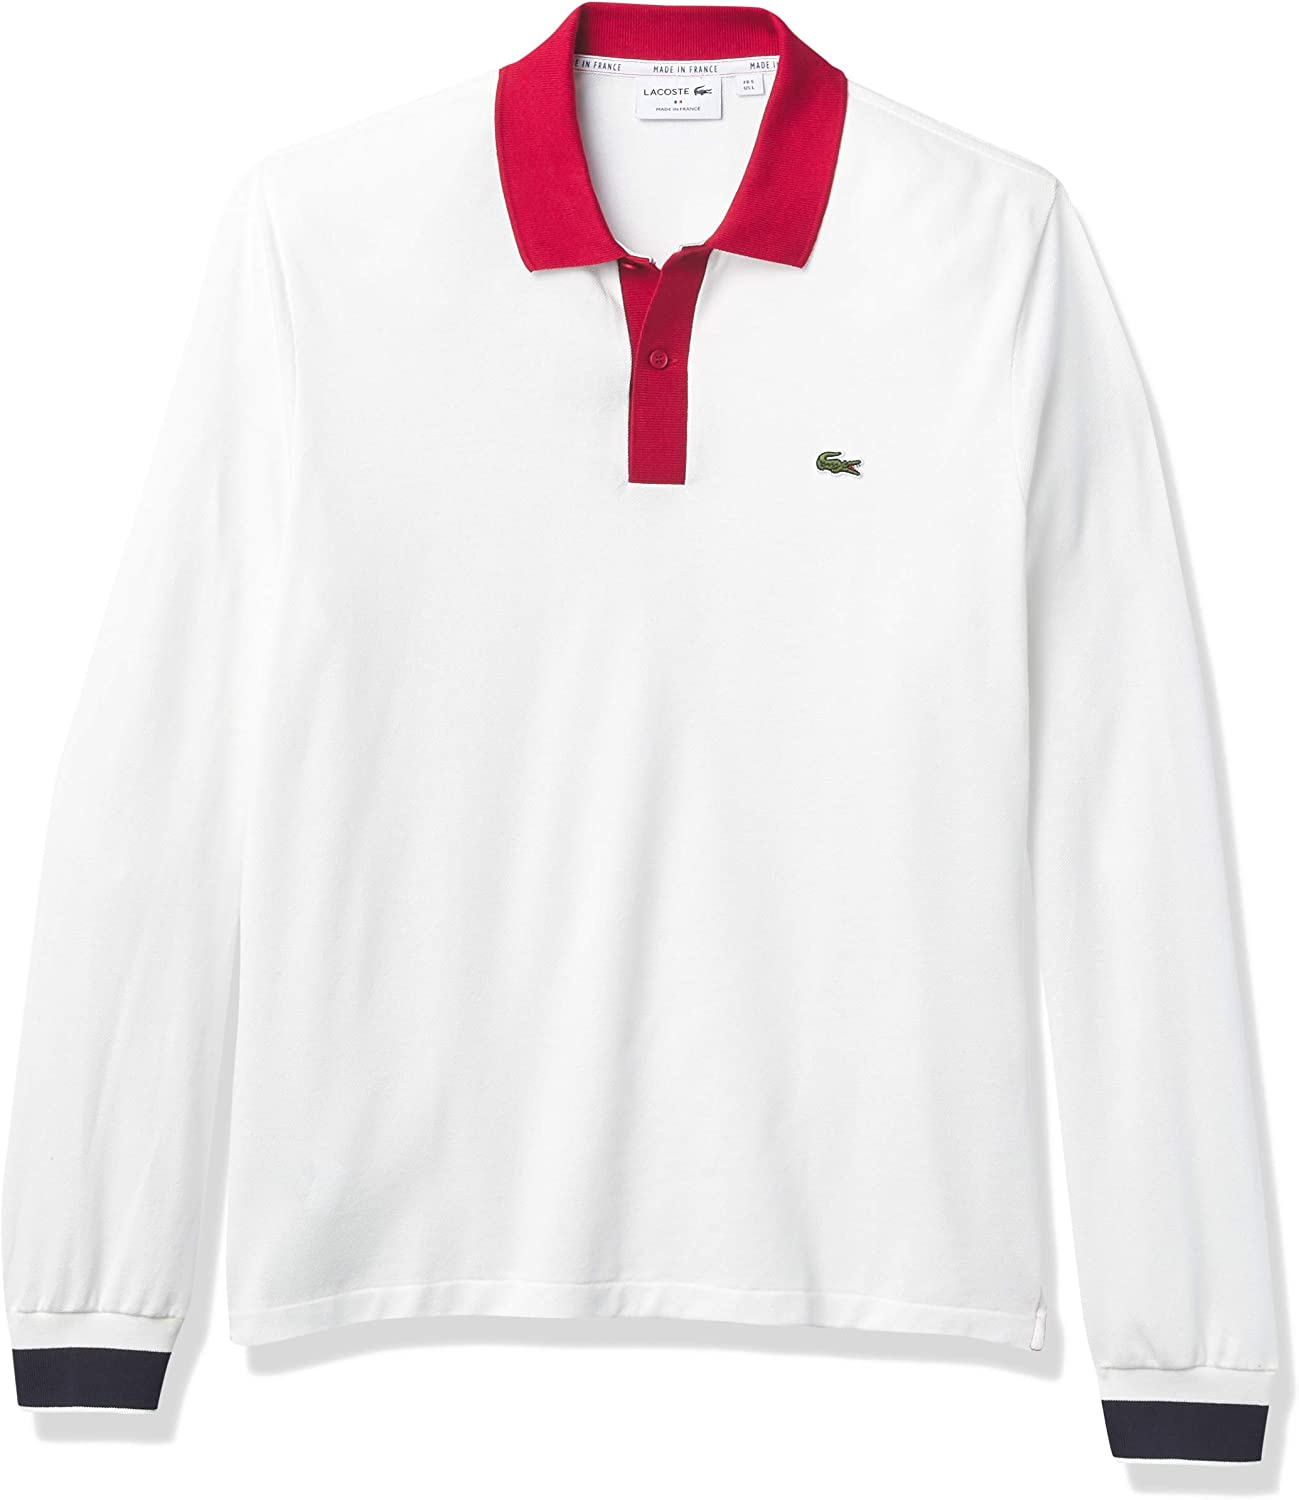 Lacoste Men's Max 68% OFF Long Sleeve Made Large-scale sale in France Semi-Fancy Polo Pique S